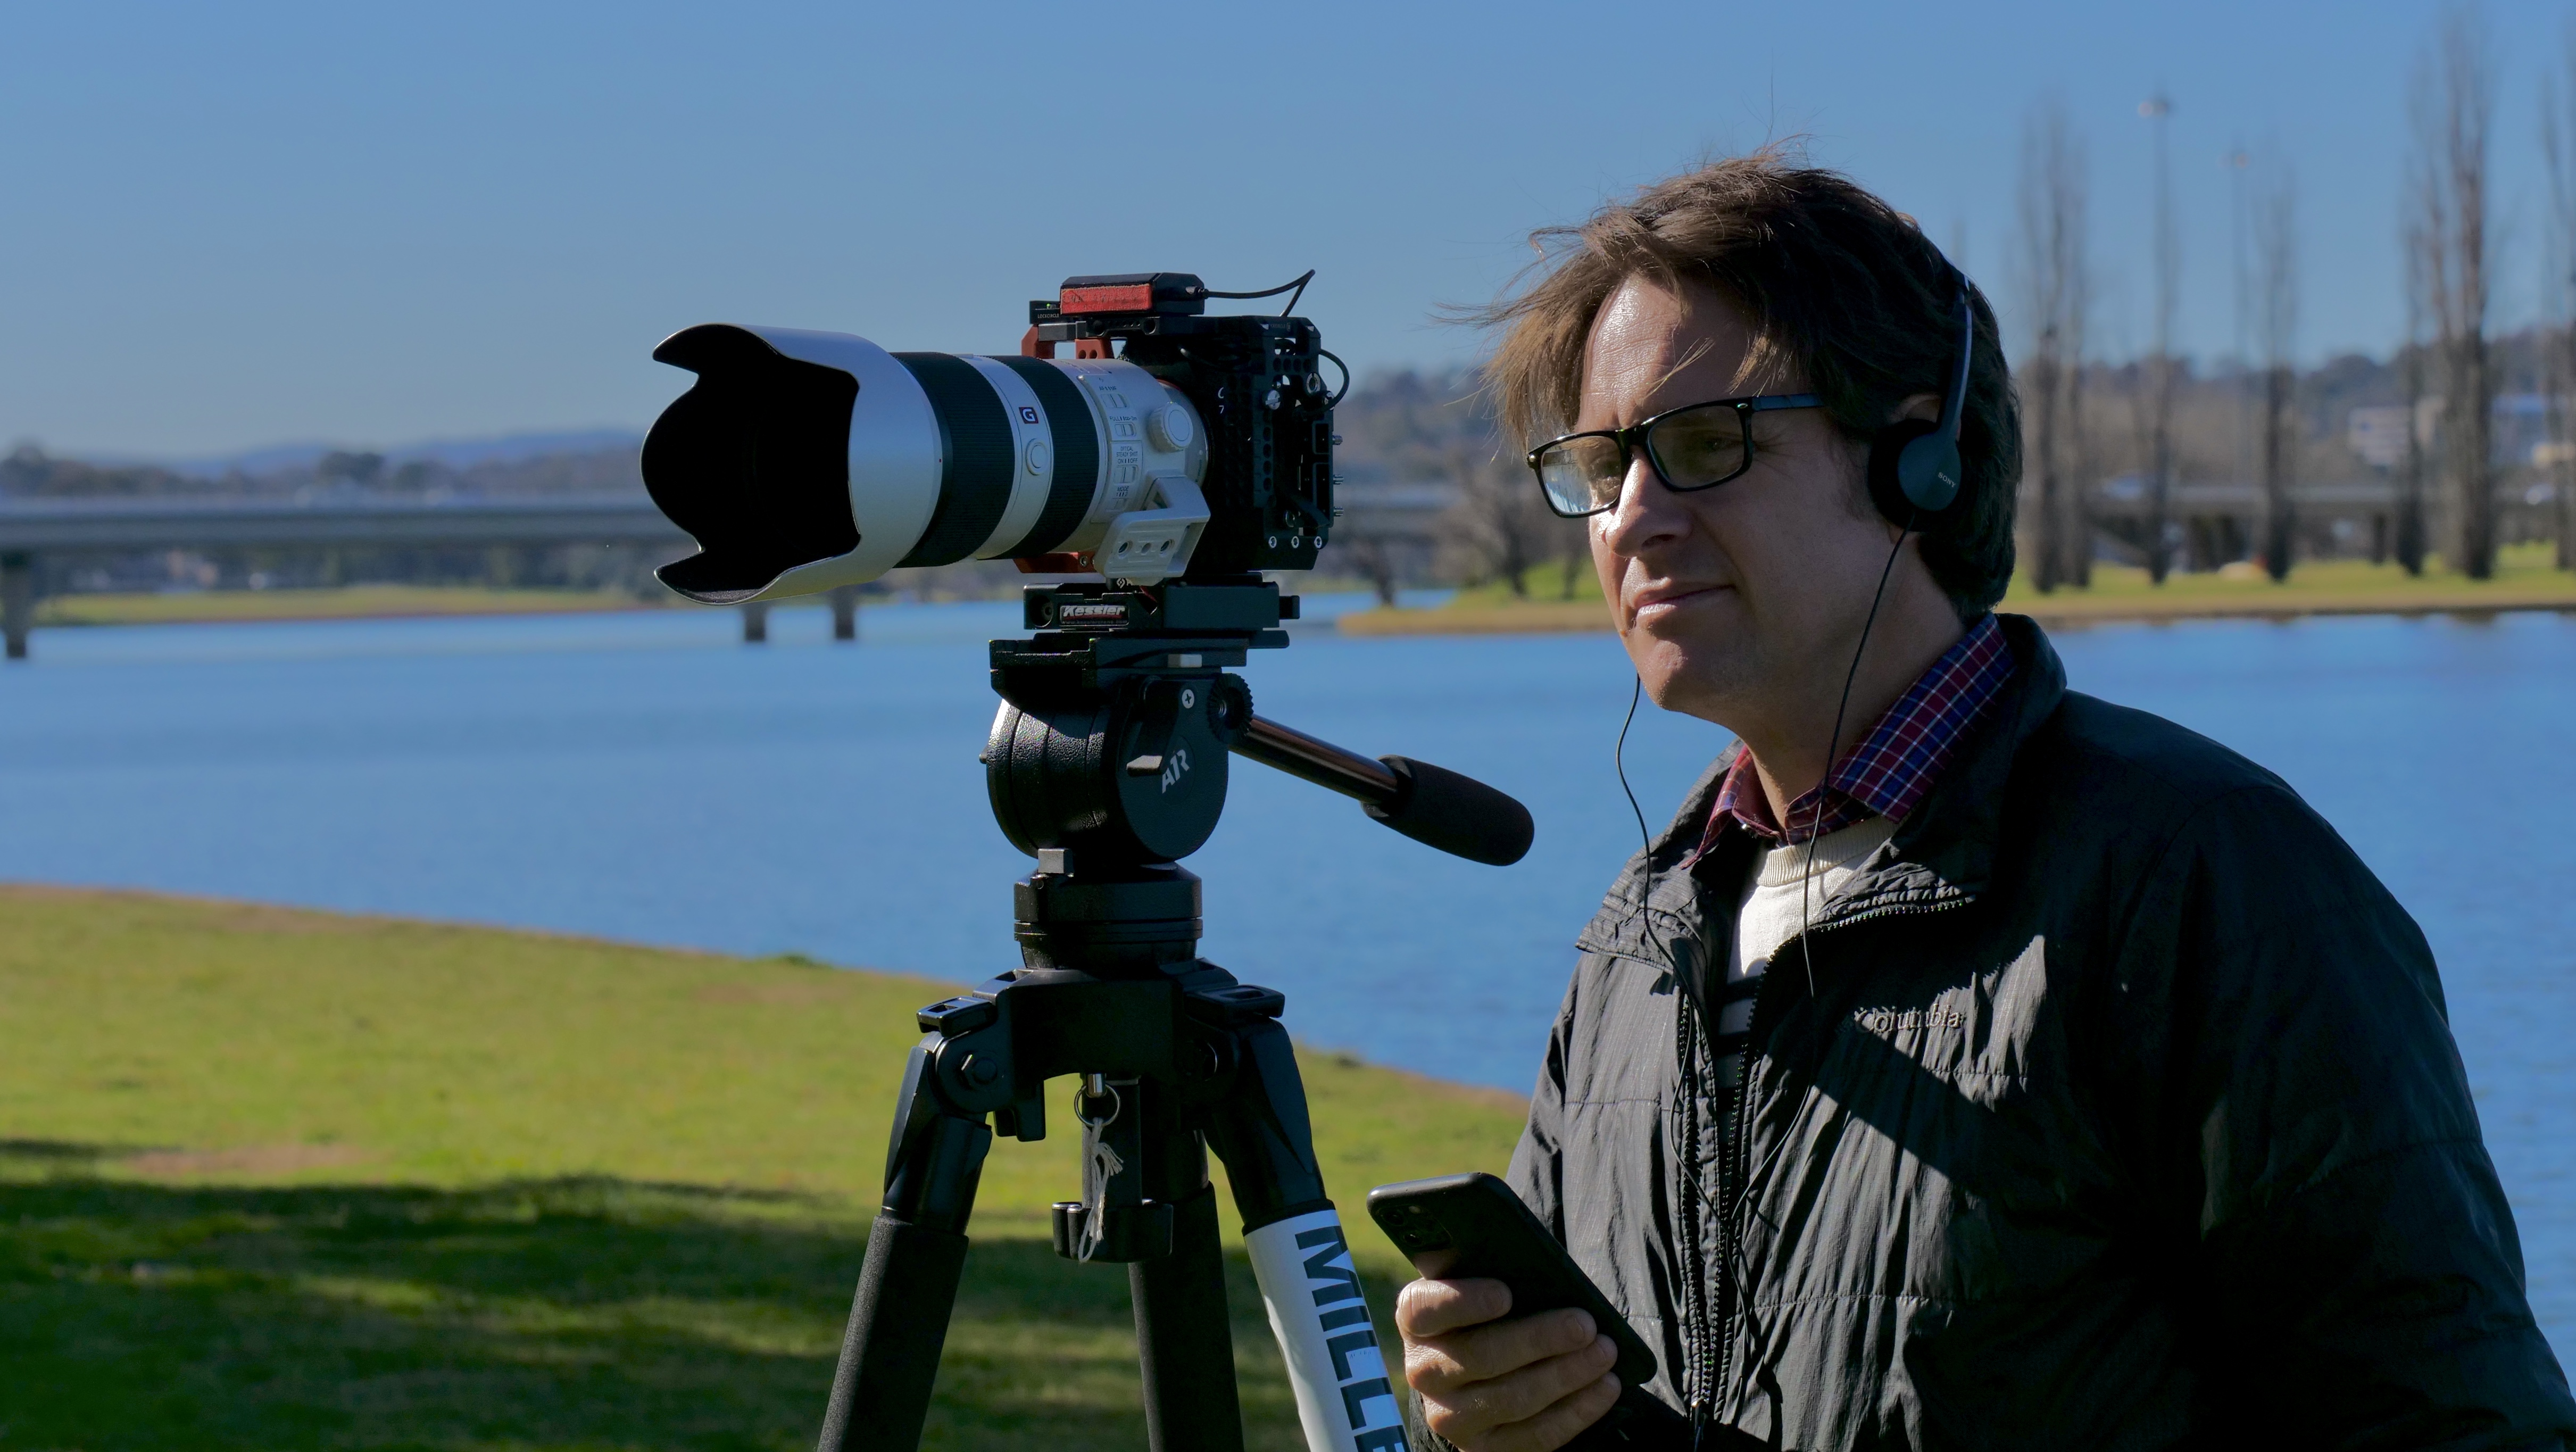 Craig Ruecassel is behind the camera in Big Deal